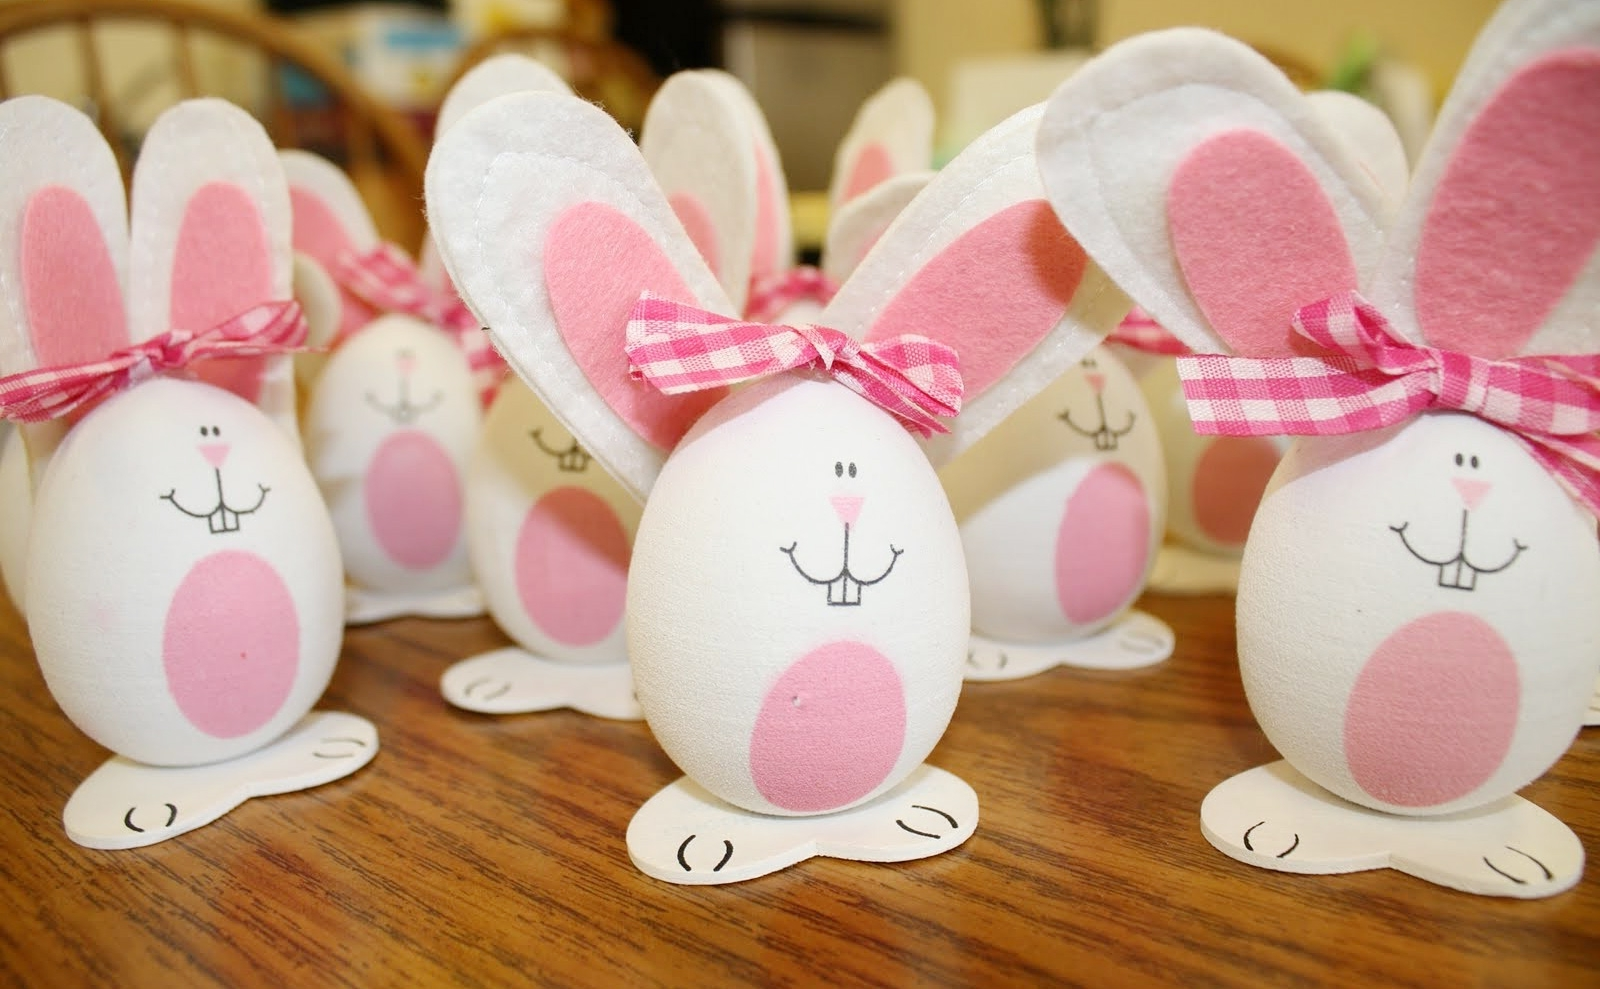 rabbits made from white eggs, easter egg designs, decorated with white and pink felt ears, fabric bows, and hand-drawn faces